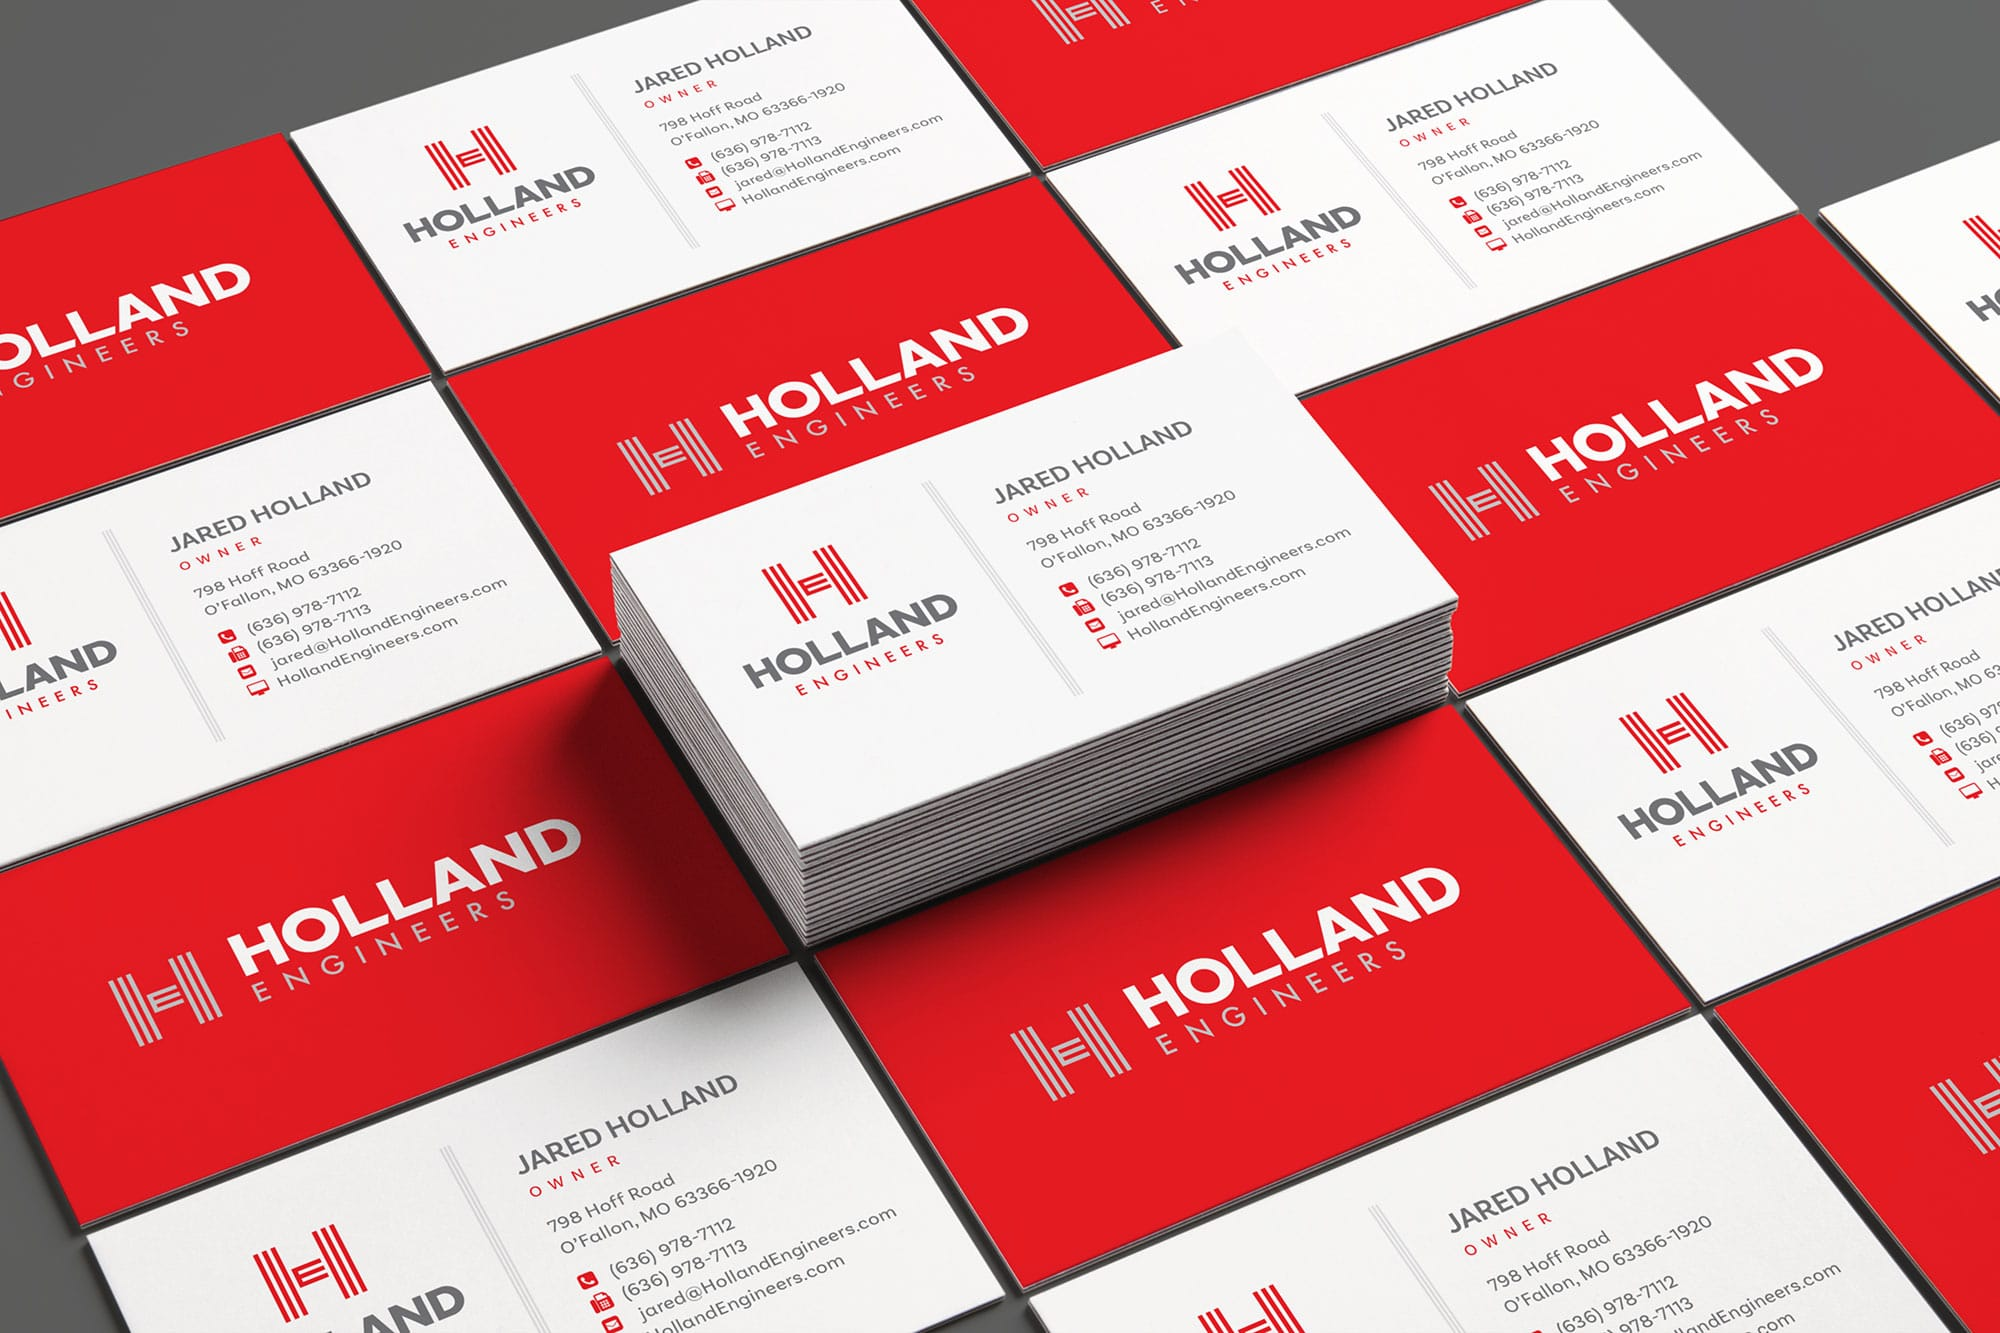 Holland Engineers business cards